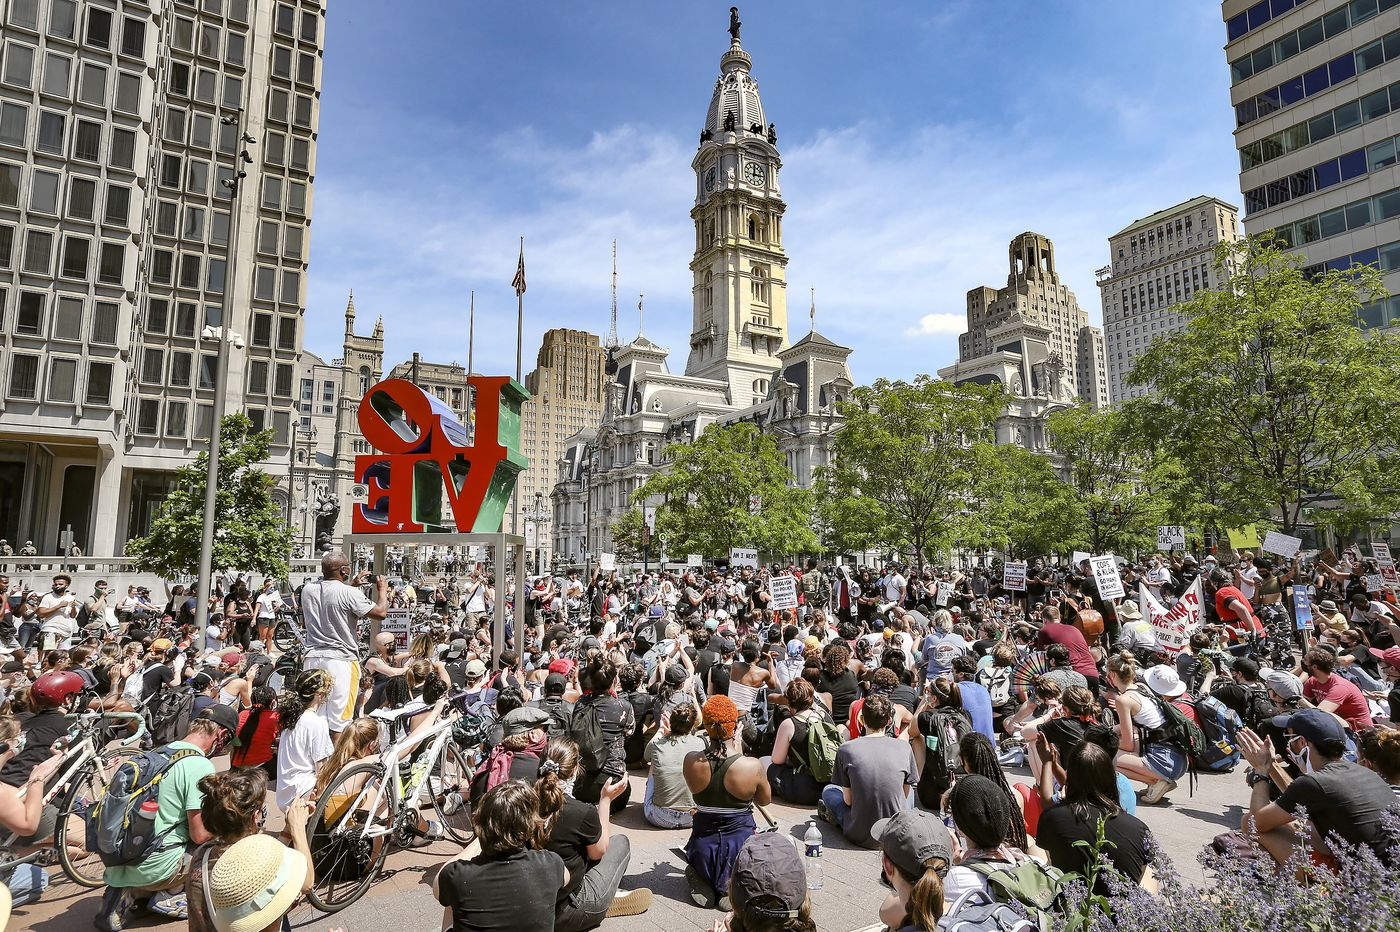 When Does Protesting Become Illegal in PA?